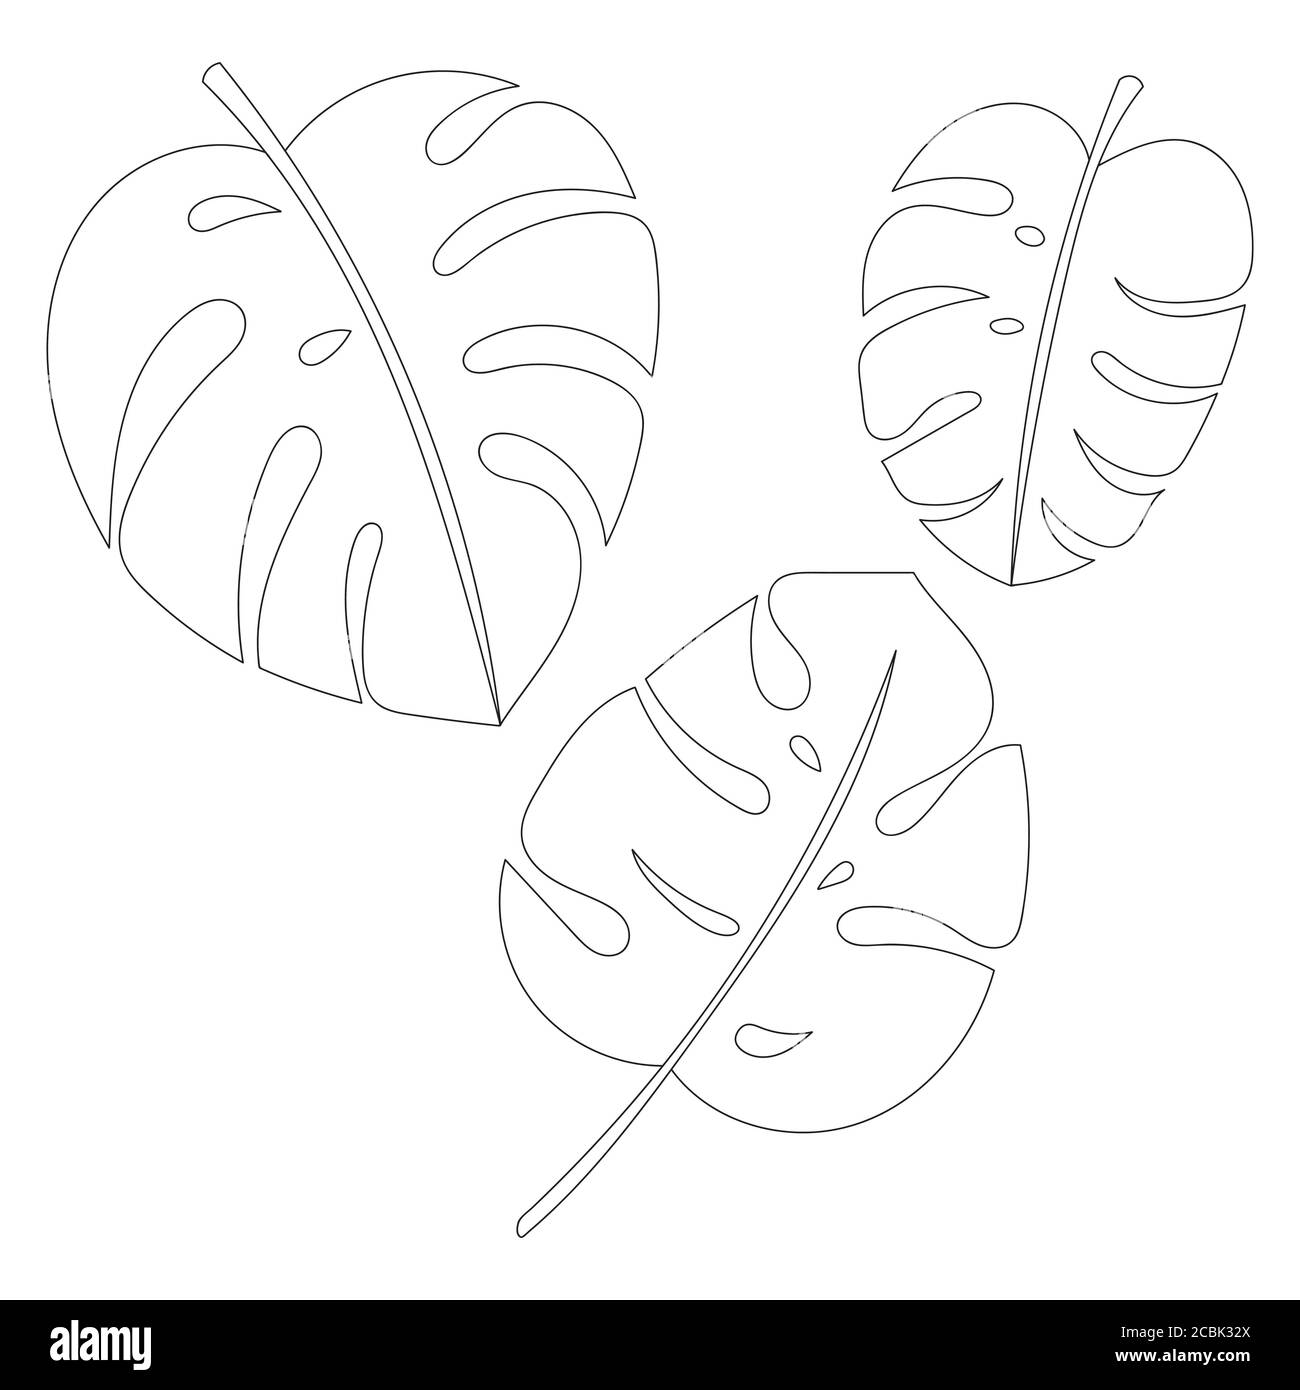 Monstera Leaf Outline High Resolution Stock Photography And Images Alamy All the best tropical leaves drawing 38+ collected on this page. https www alamy com vector jungle leaves set tropical exotic plant leaf isolated on white background monstera botanical floral illustration outline drawings image368598466 html